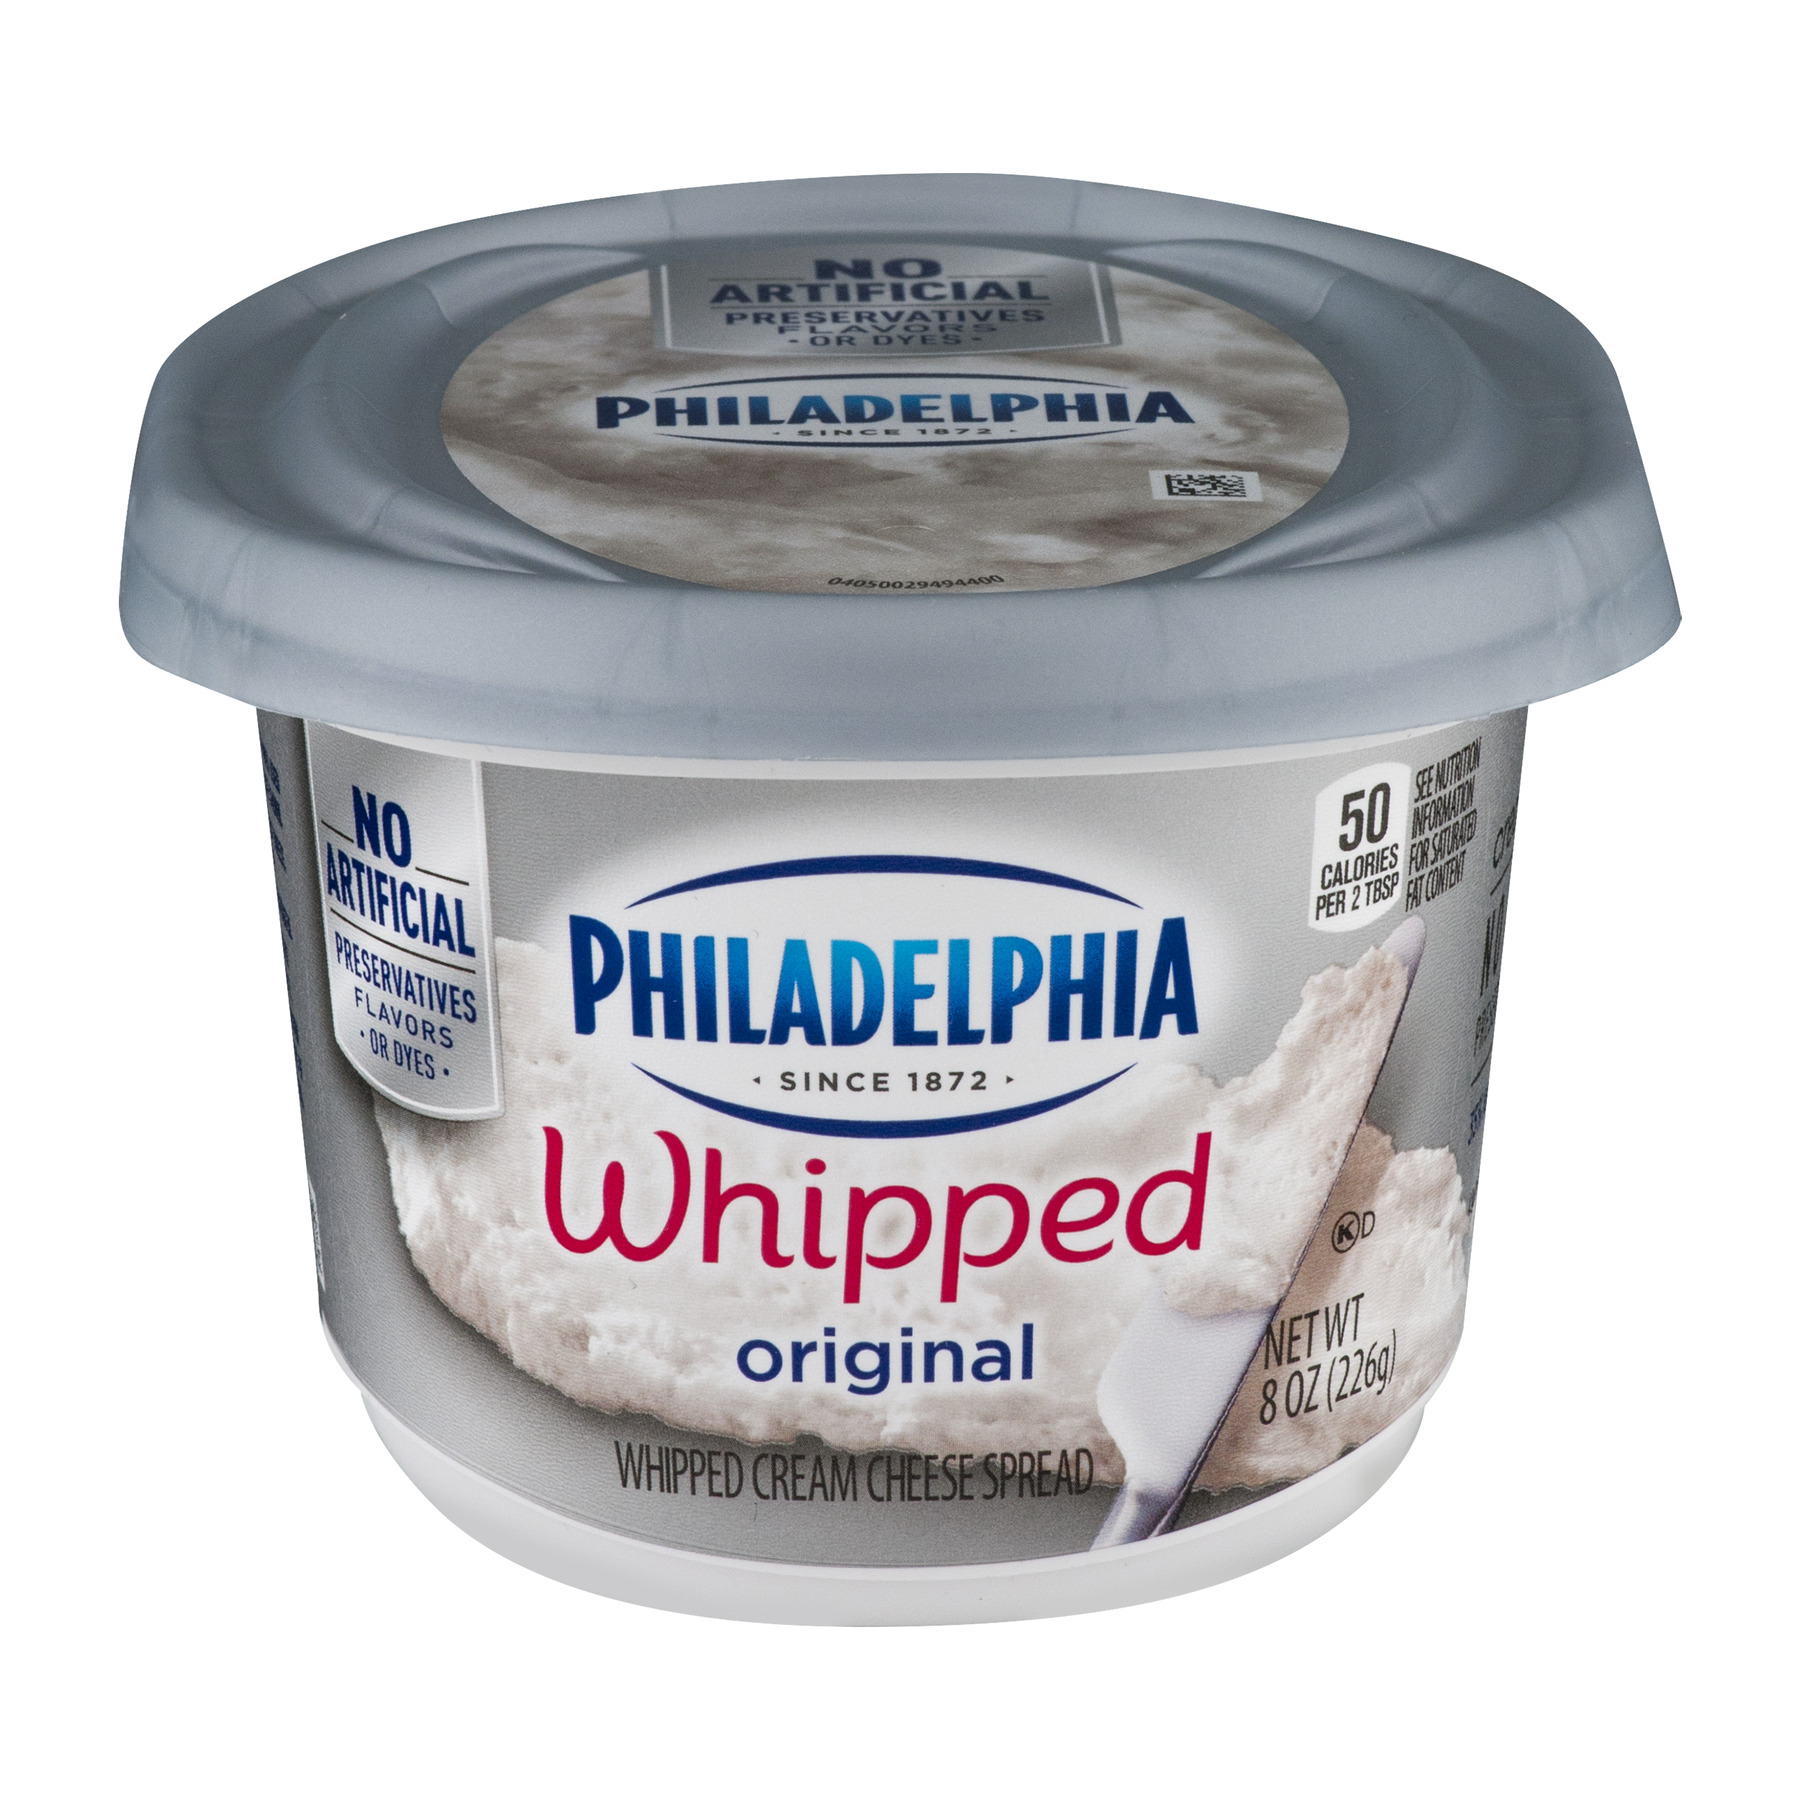 Philadelphia Whipped Original Cream Cheese Spread, 8.0 OZ